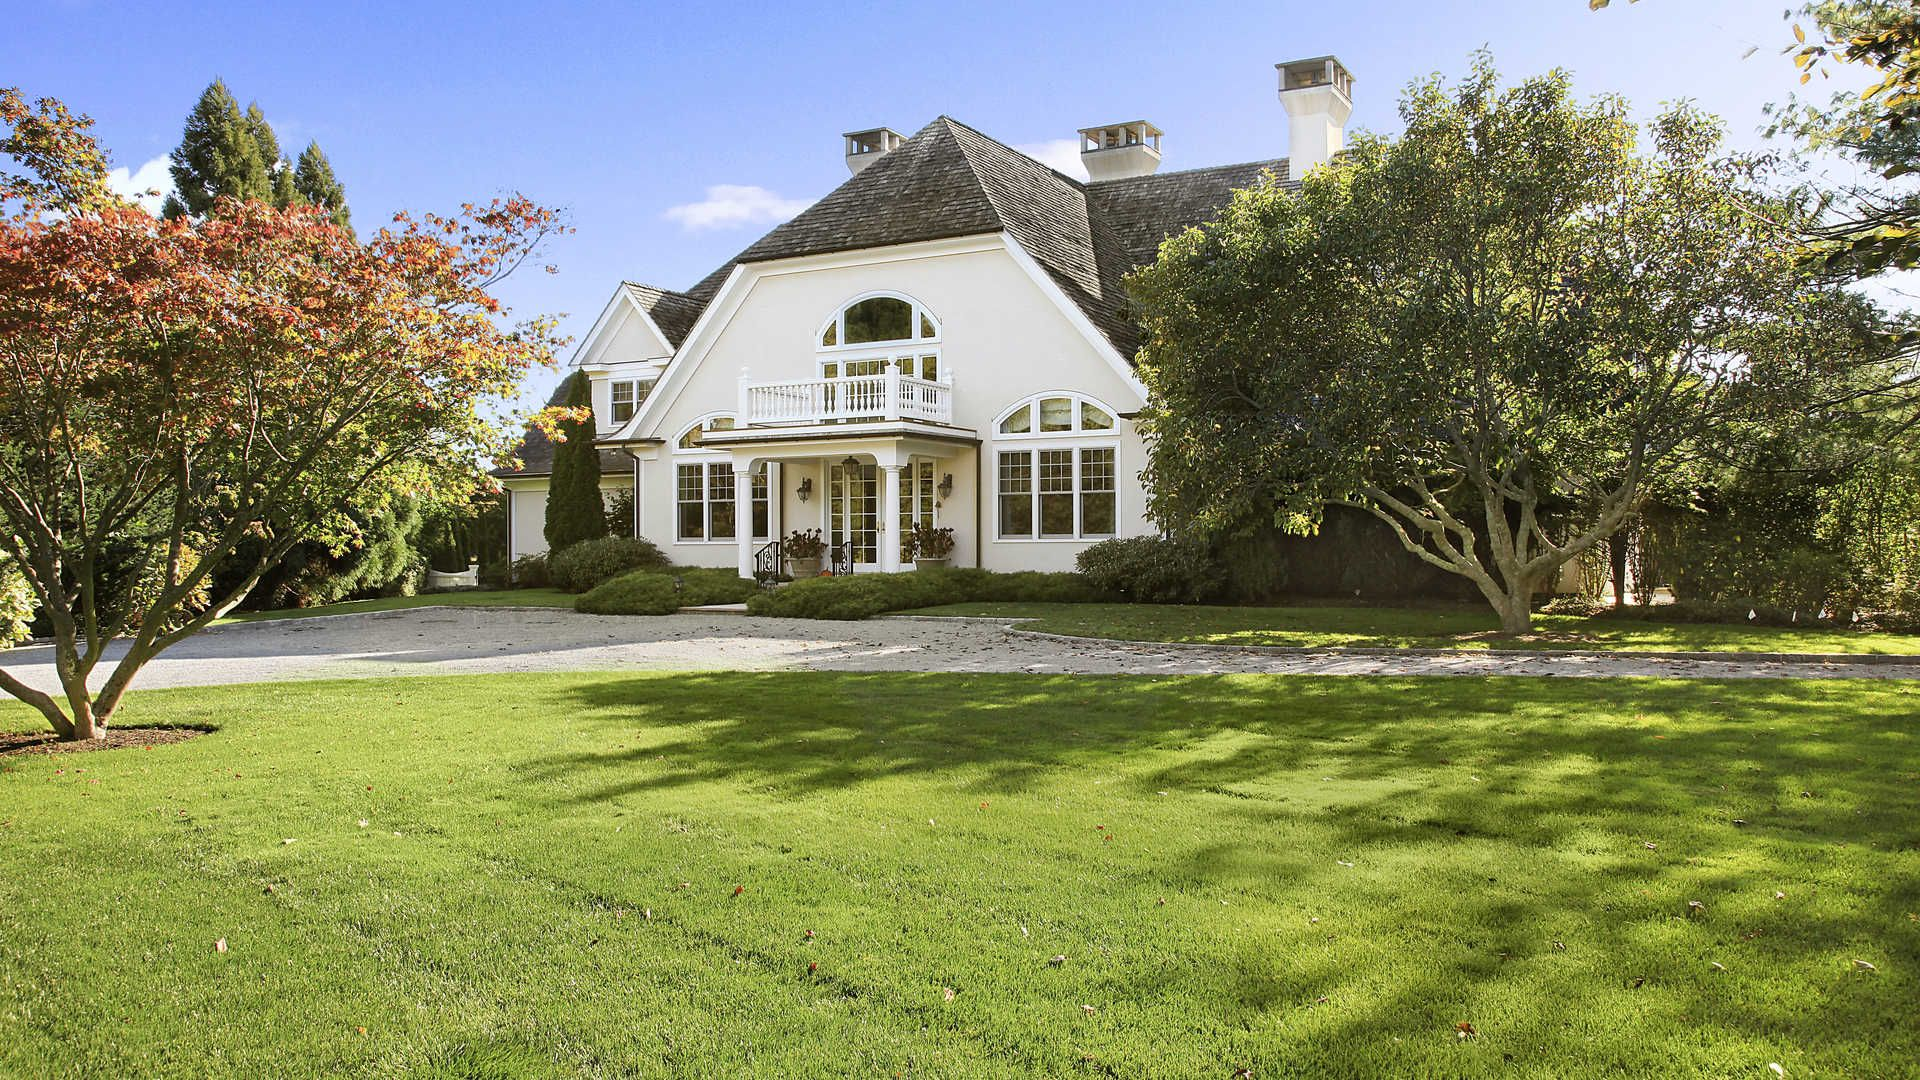 Luxury Home For Sale In 64 Down East Lane, Hamptons, NY #LuxuryProperty.com